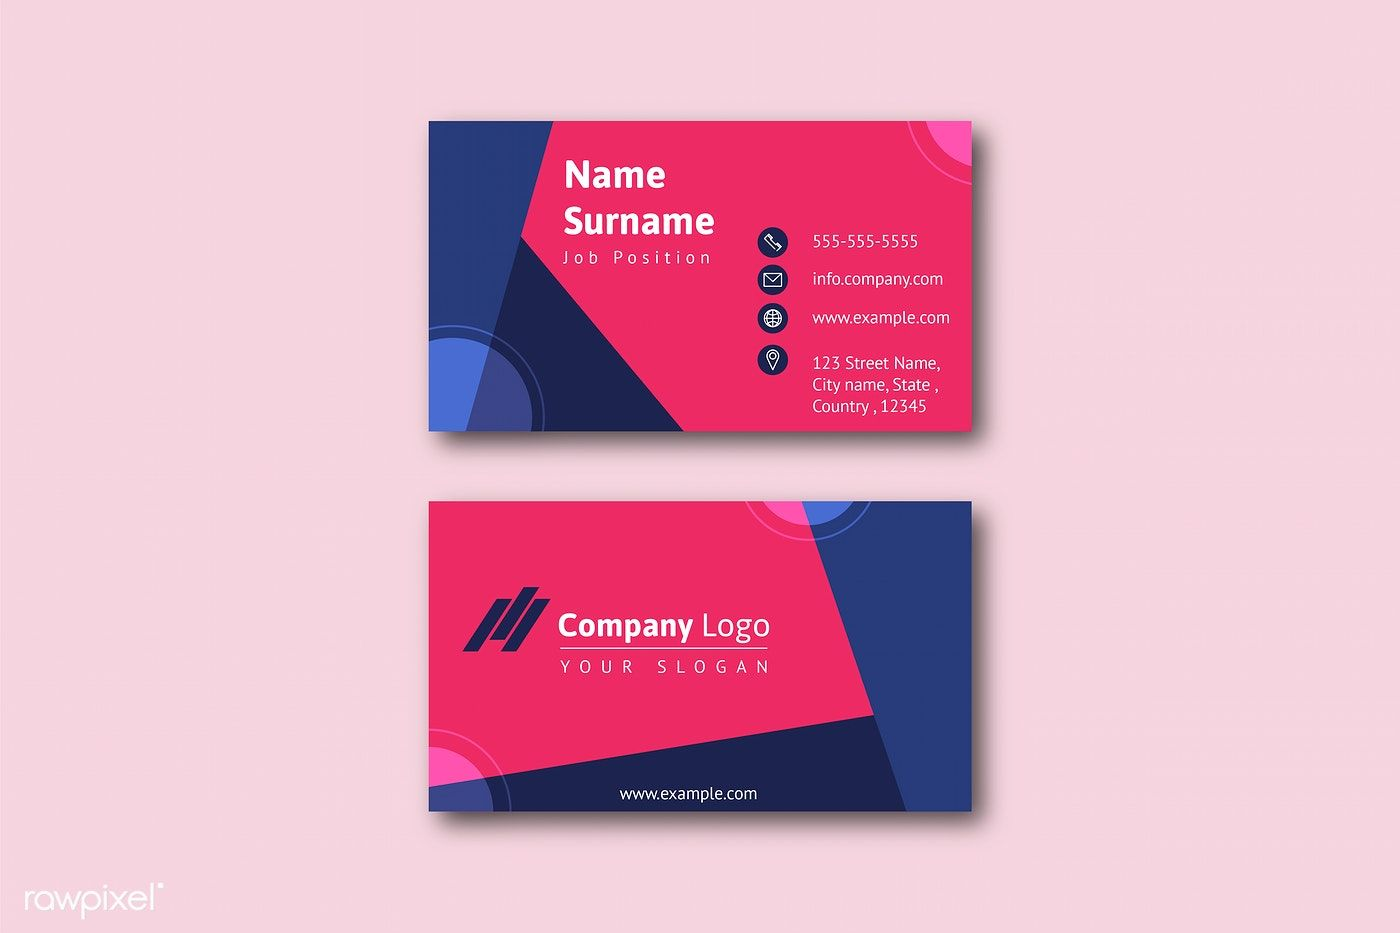 Business Card Template Front And Back Vector Free Image By Rawpixel Com Jan Modern Business Cards Business Card Texture Free Business Card Templates